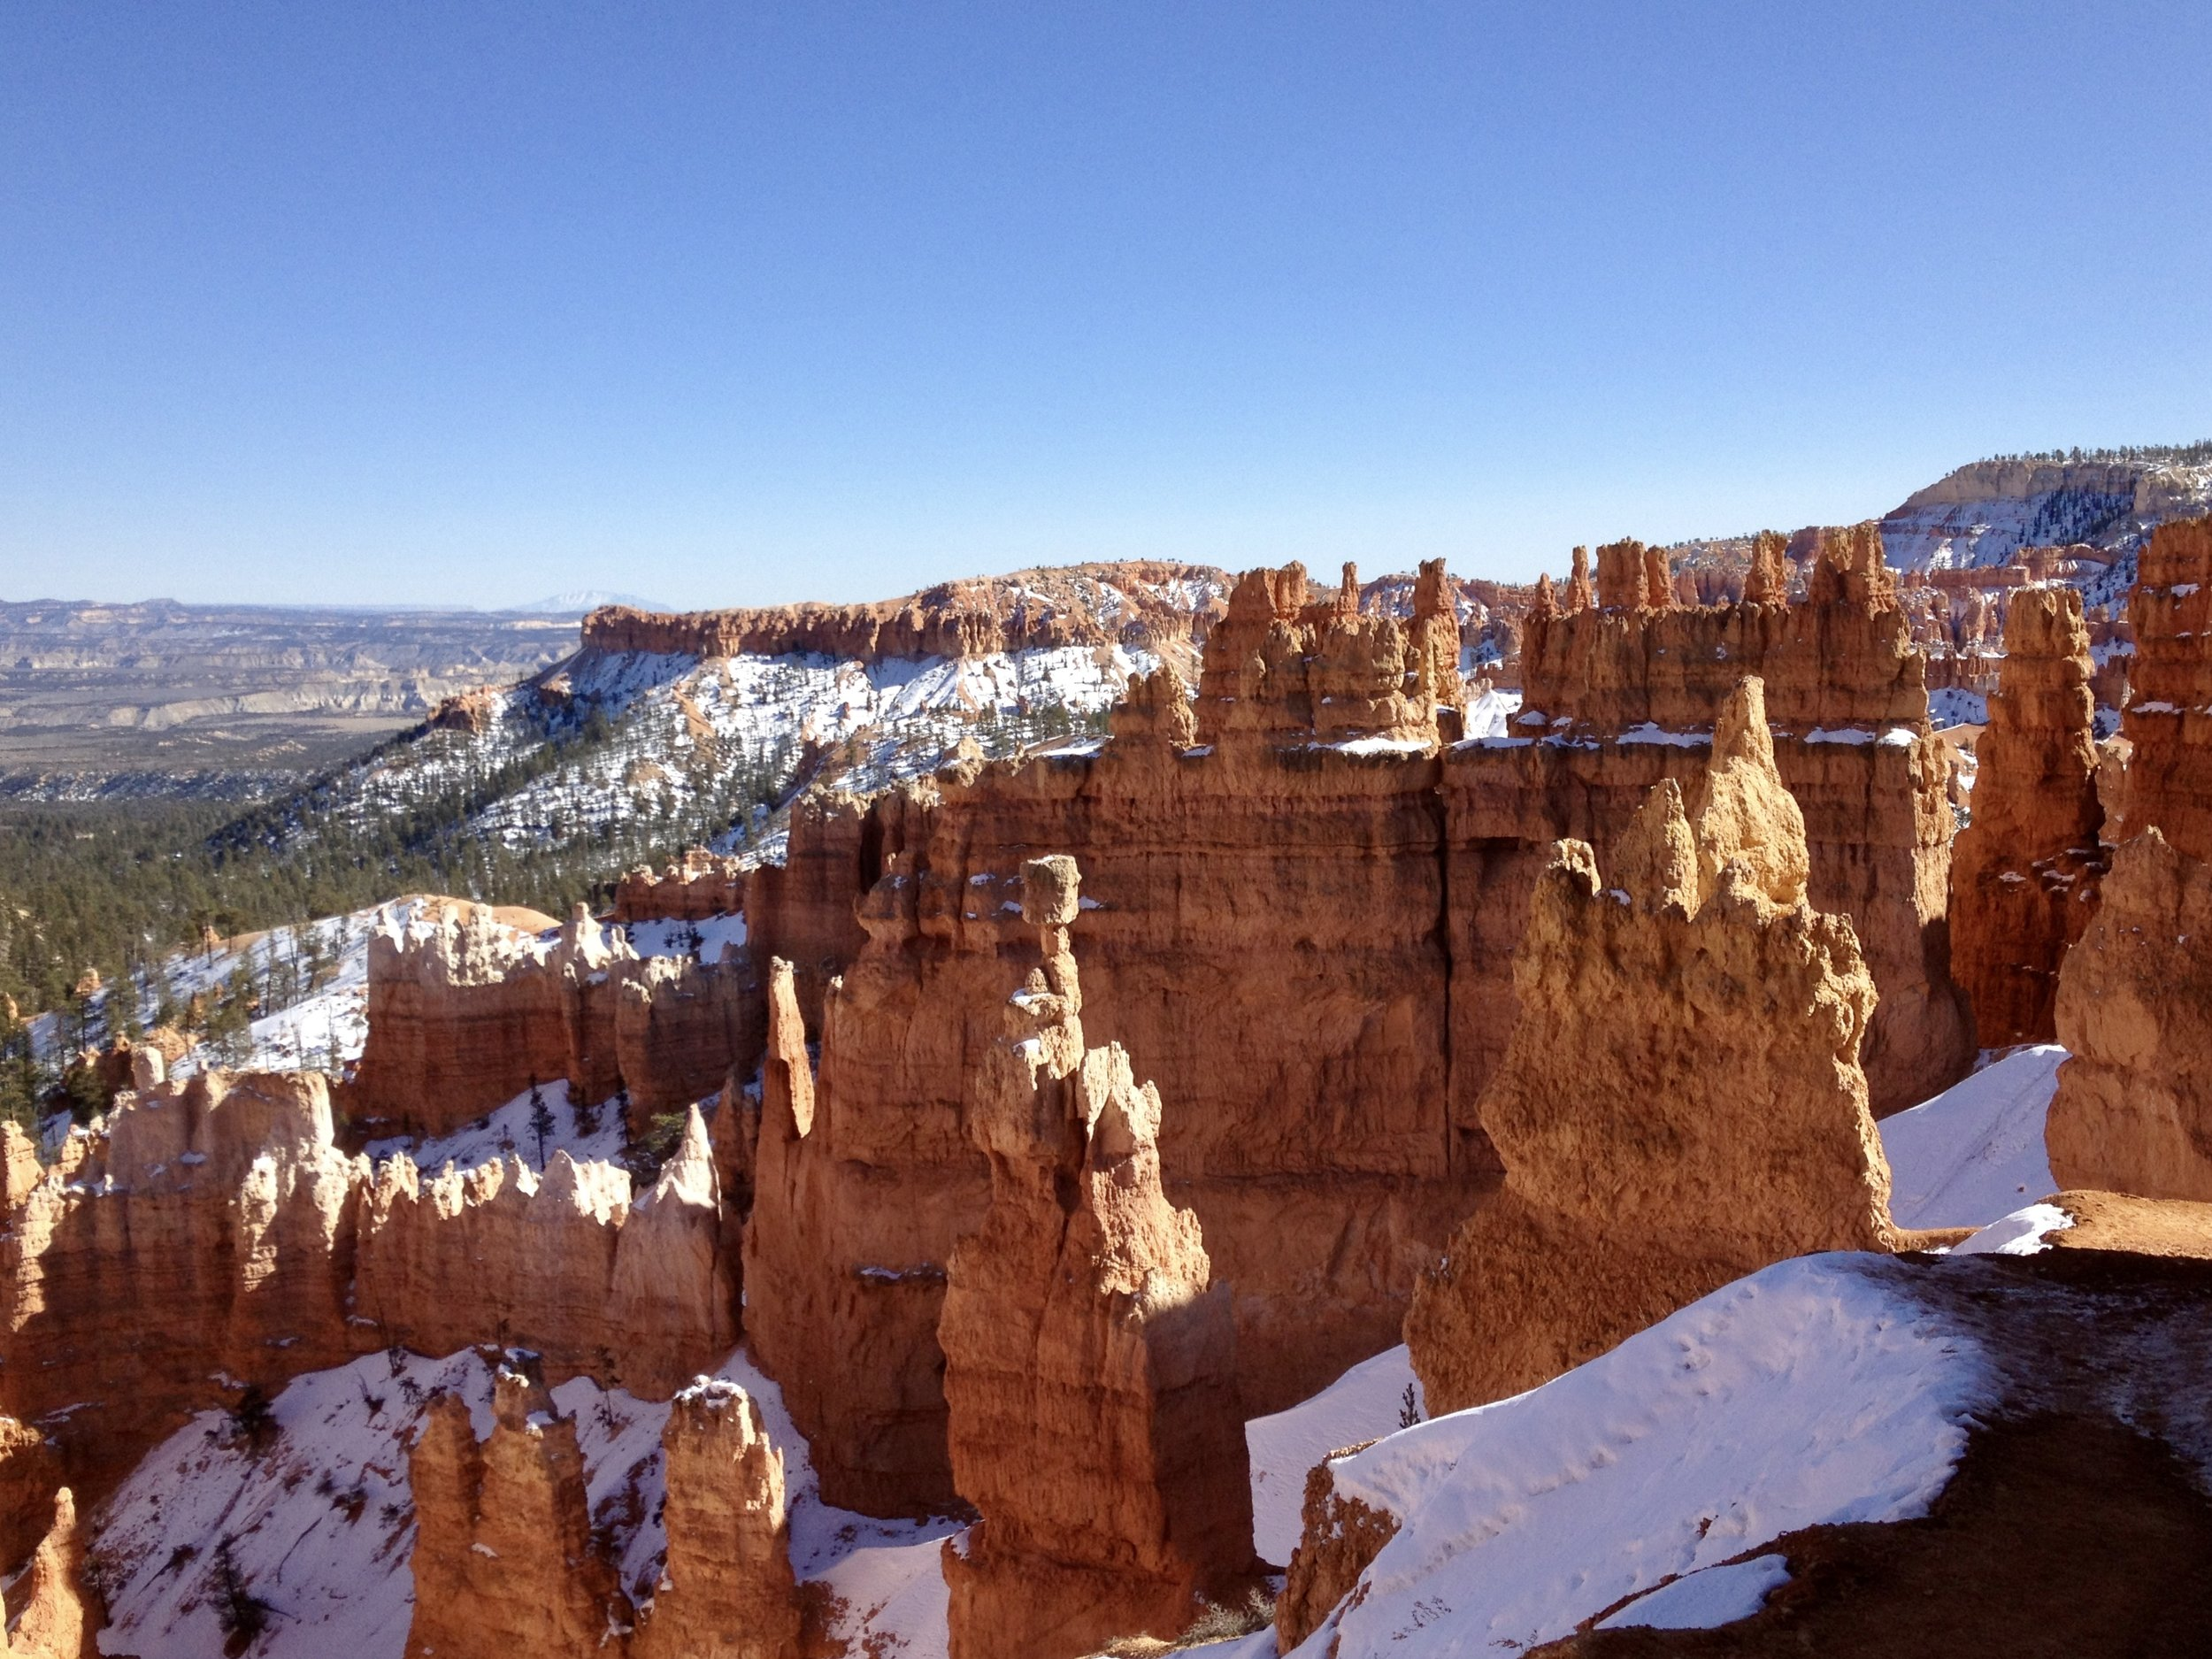 The colorful but delicate 'hoodoo' formations in Bryce Canyon